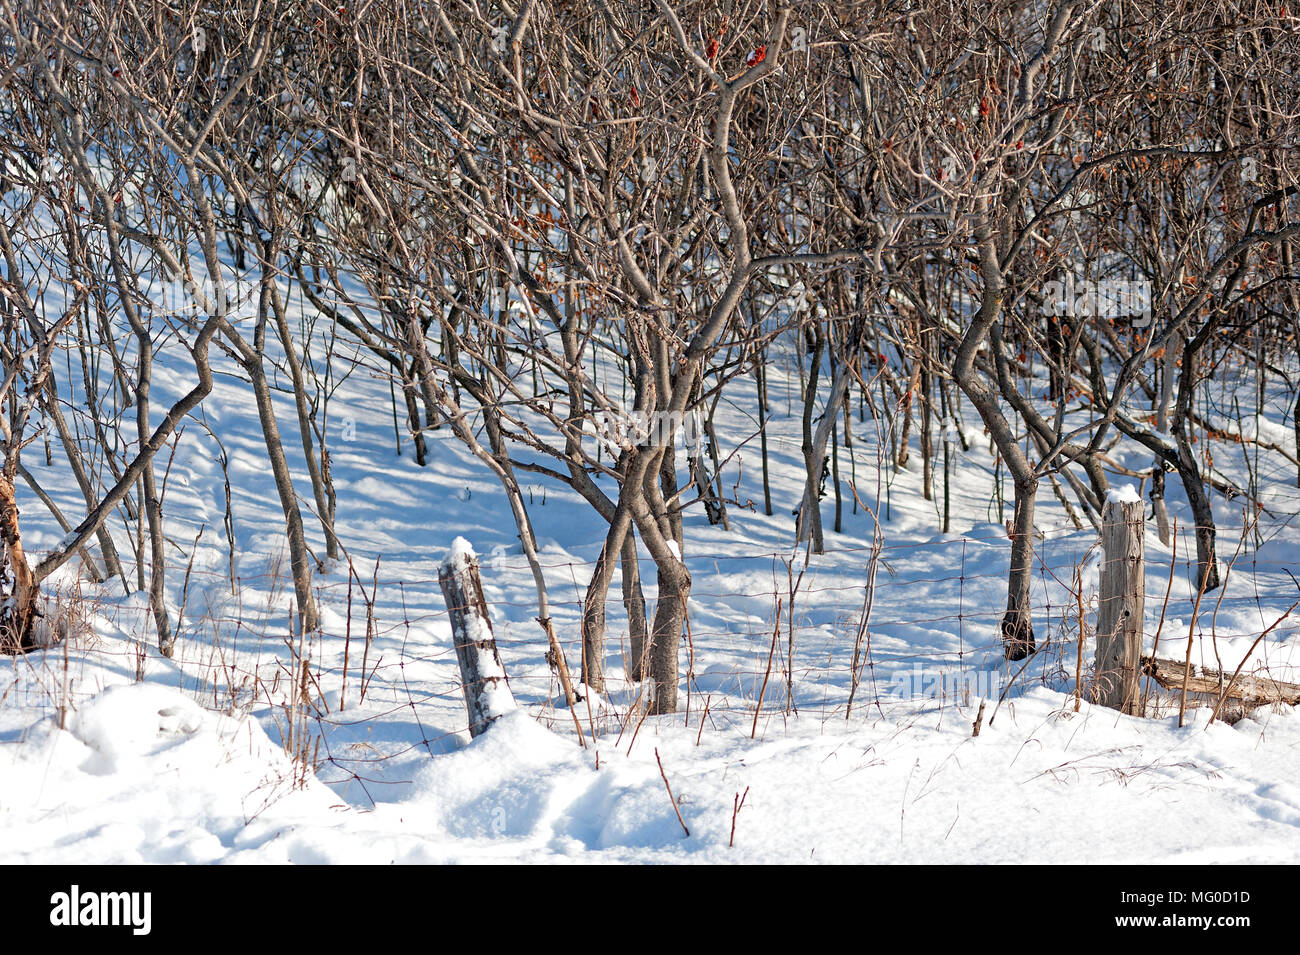 Young saplings in snow - Stock Image